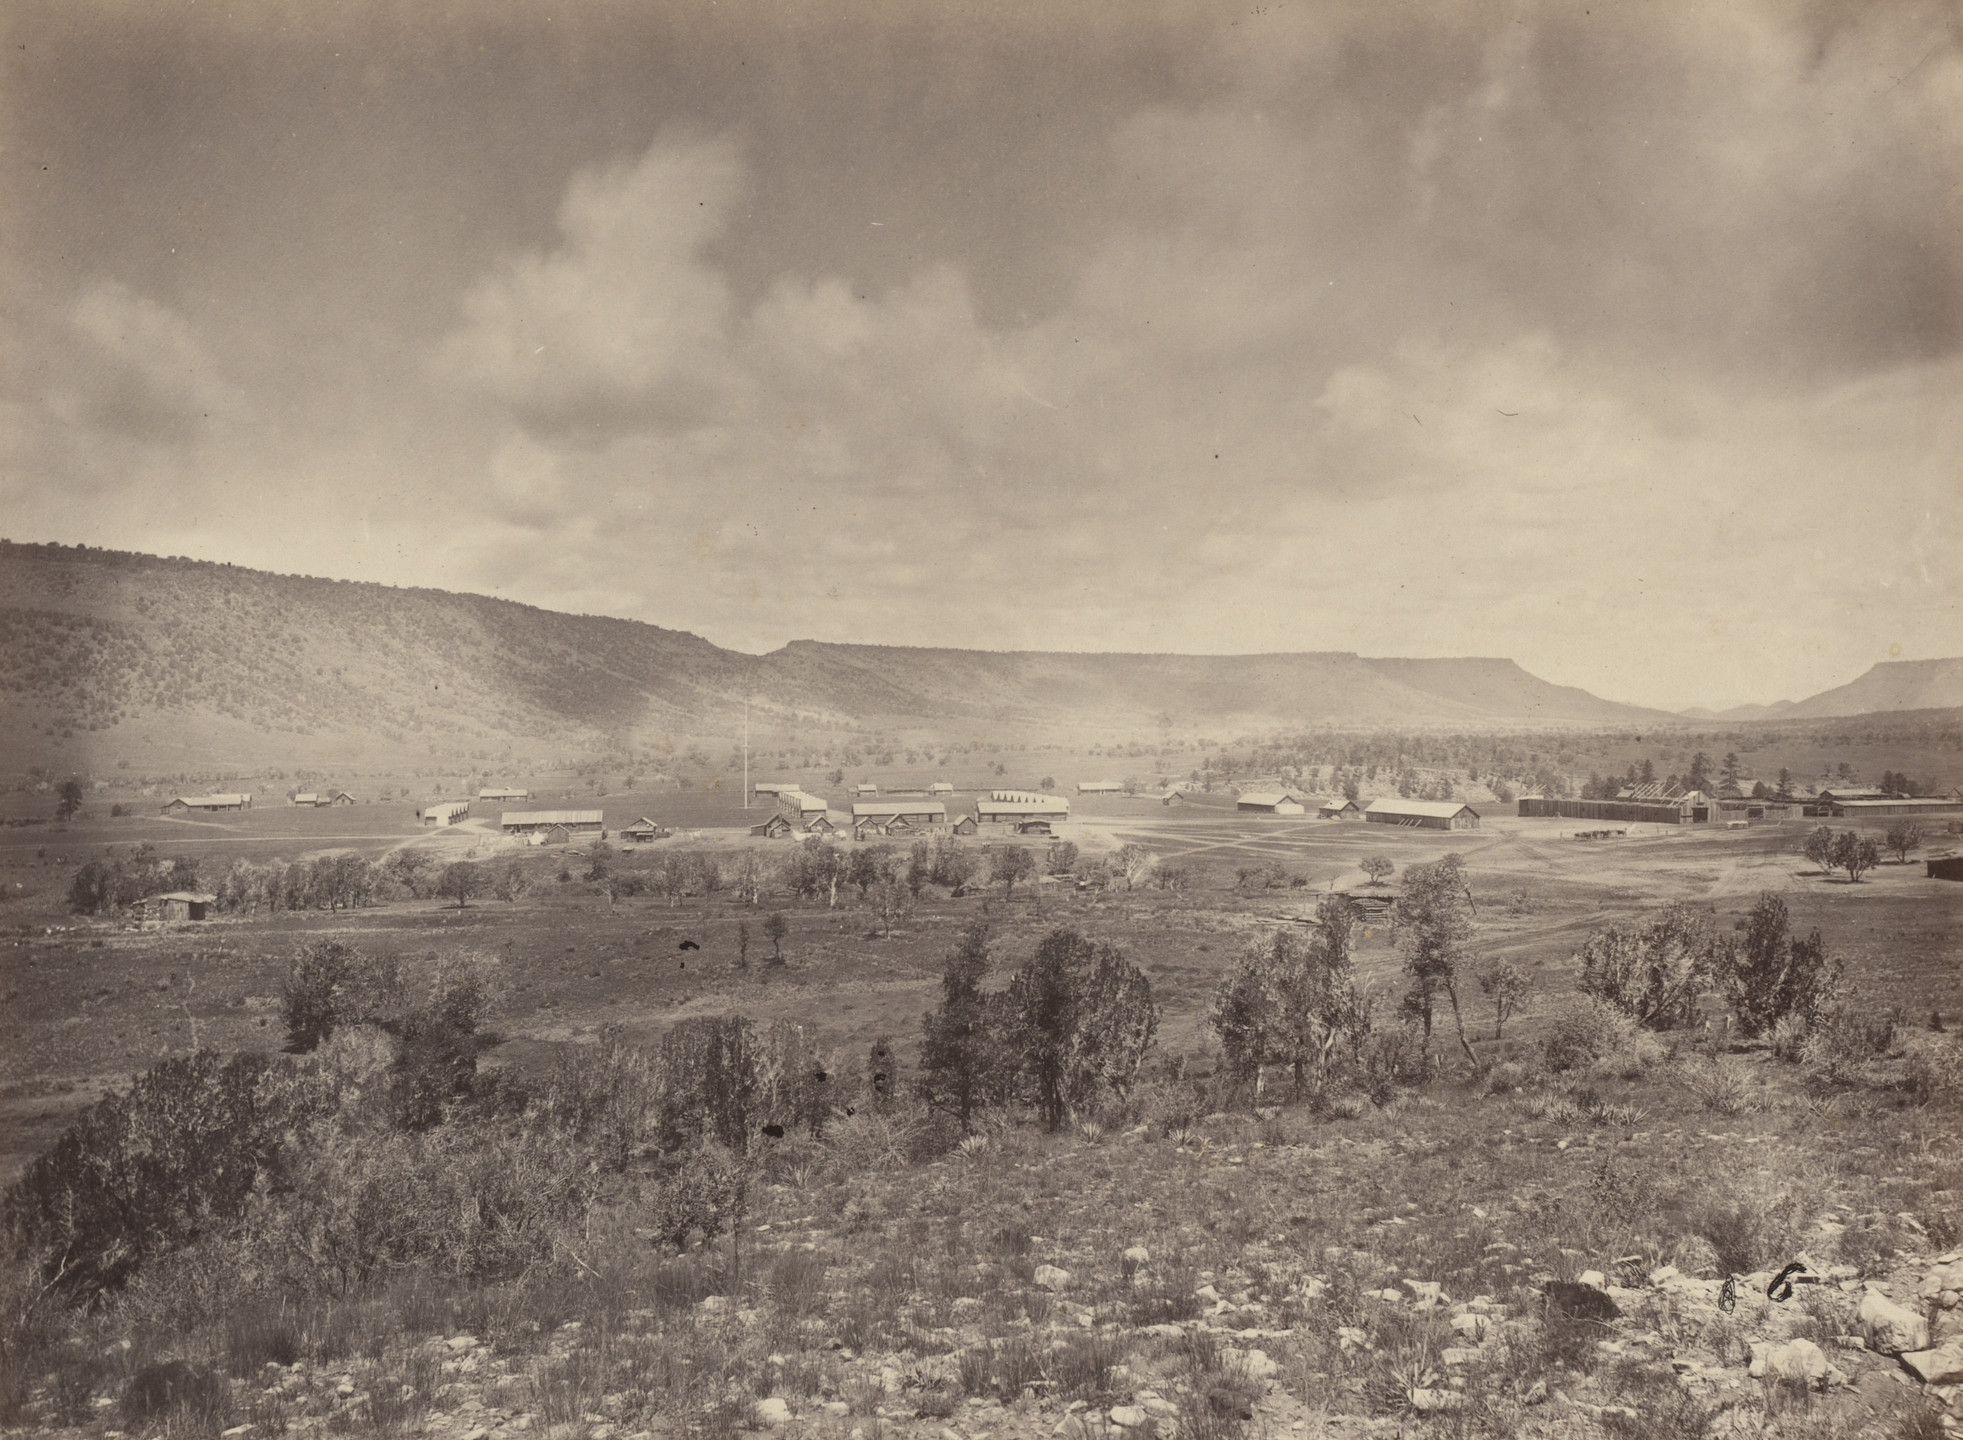 Timothy O'Sullivan. Distant View of Camp Apache, Arizona. Seasons of 1871, 1872 and 1873